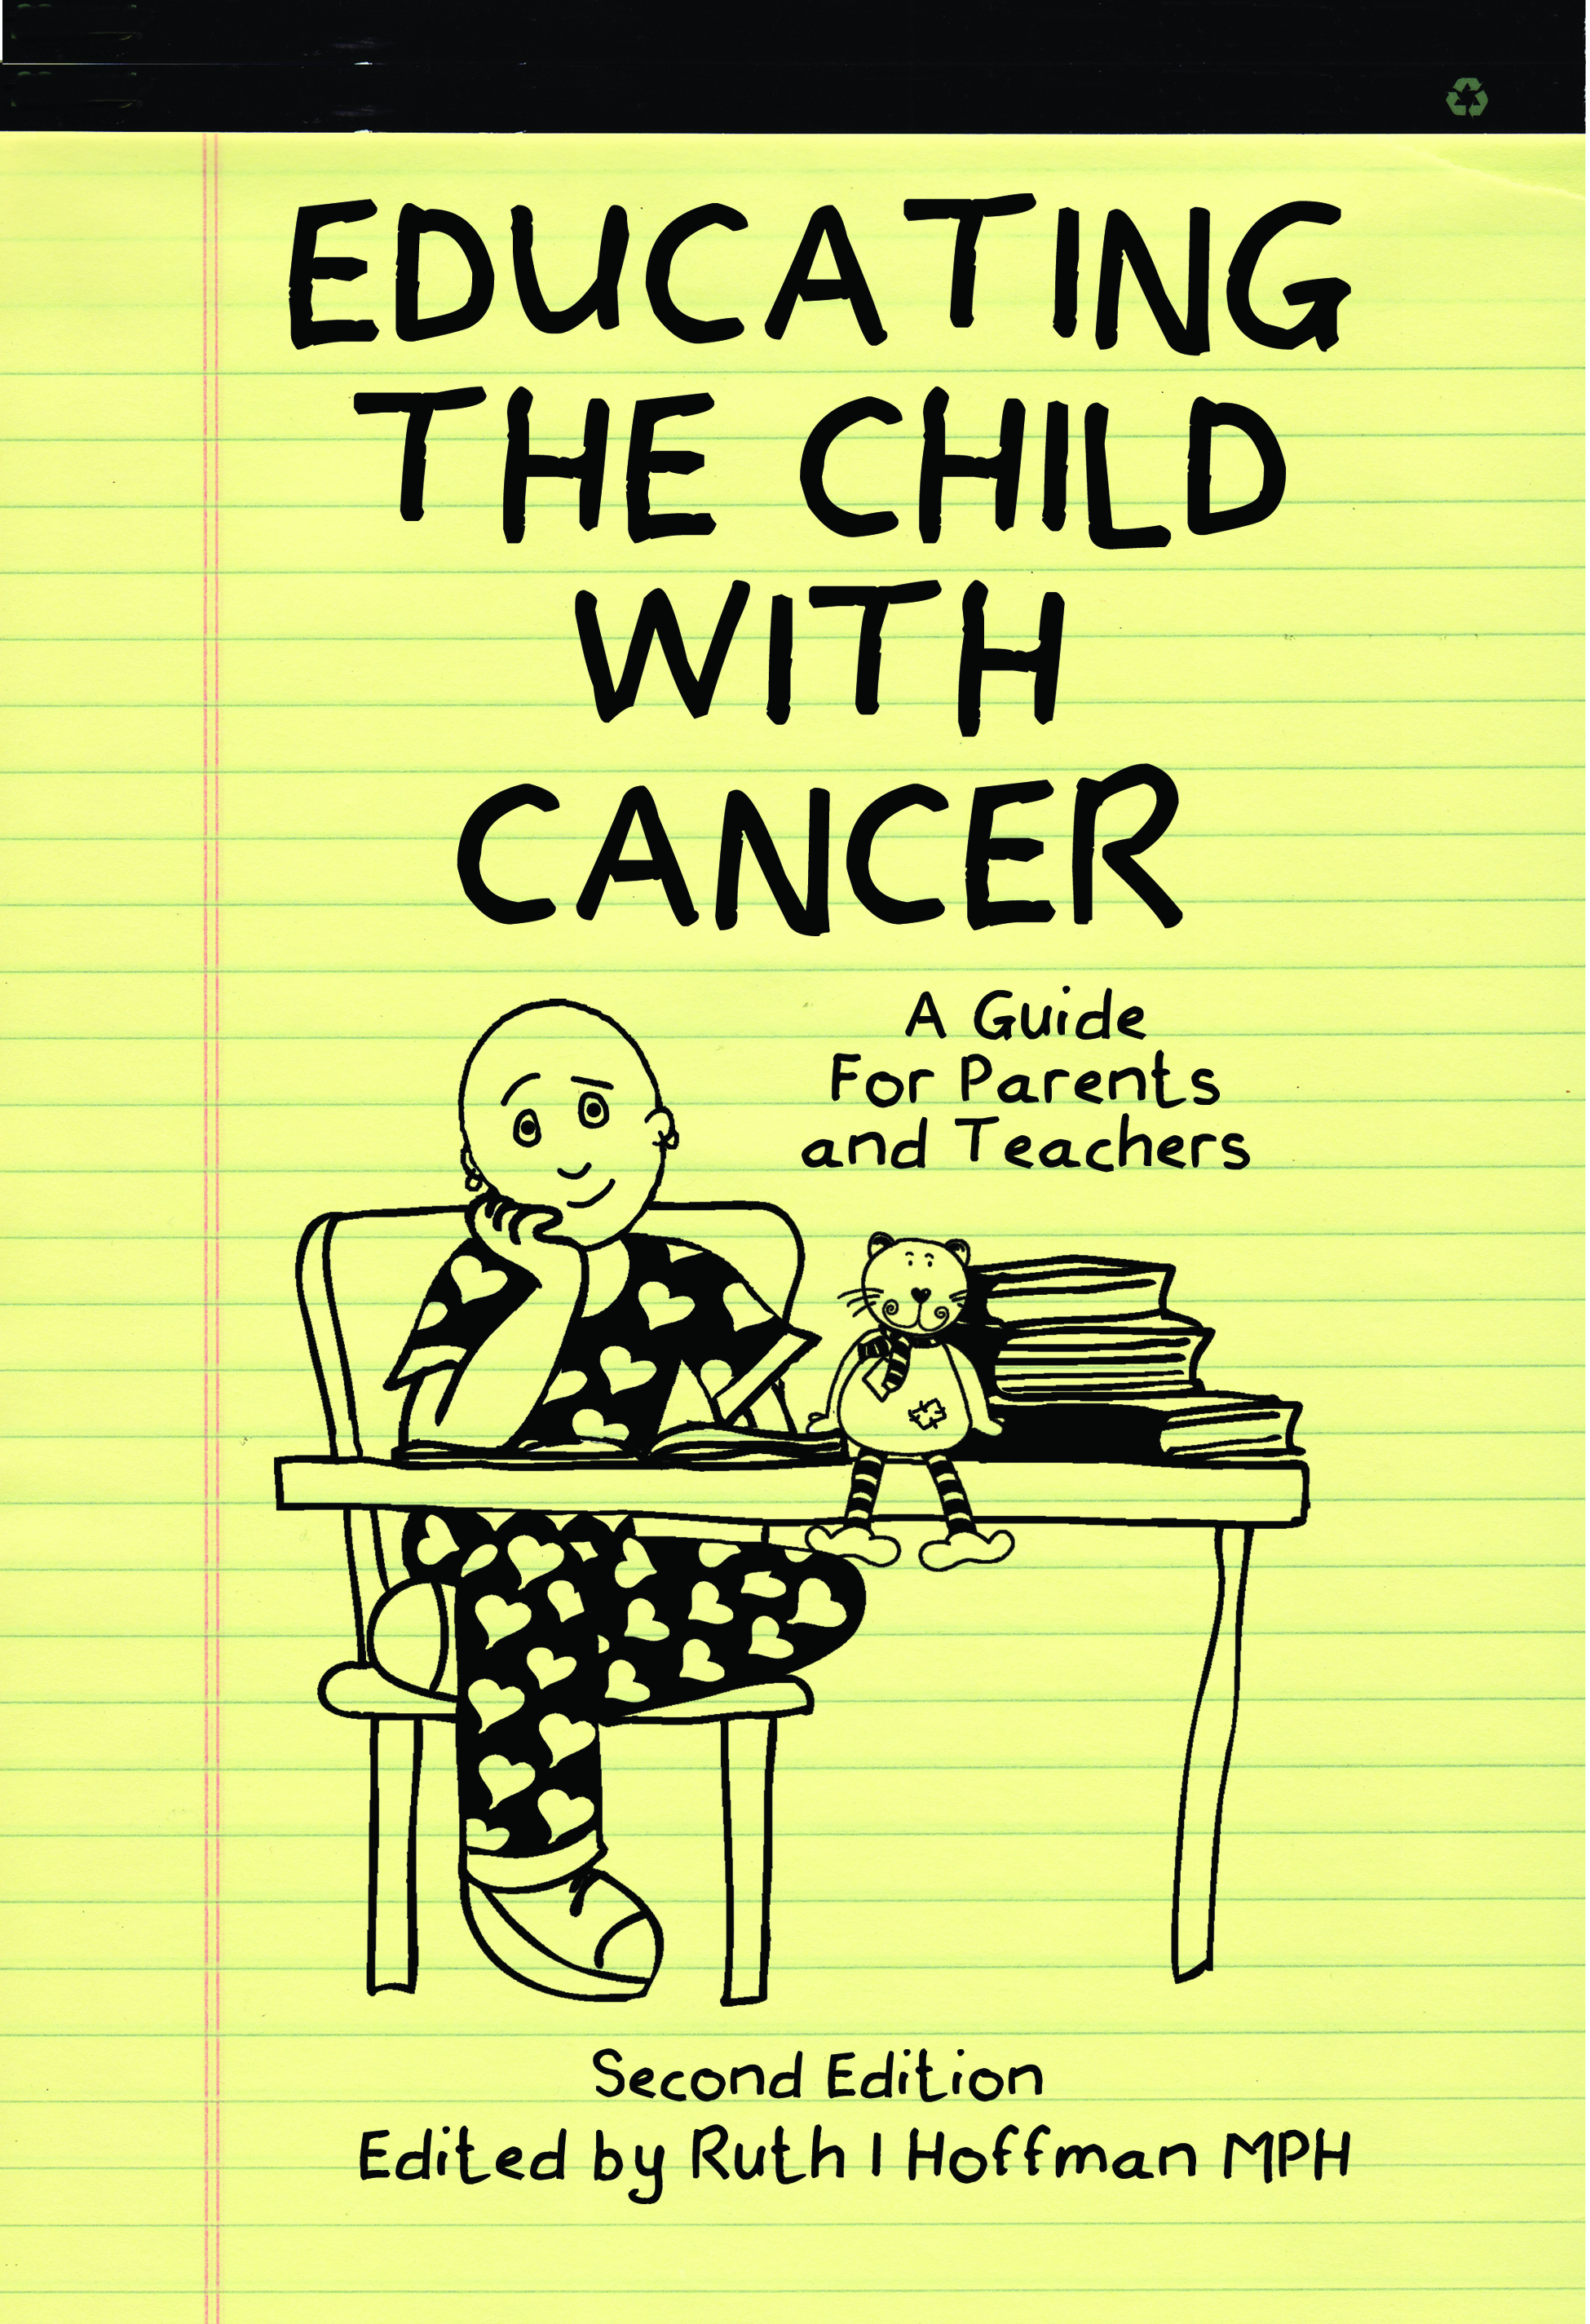 How to communicate with a child who is being treated for cancer